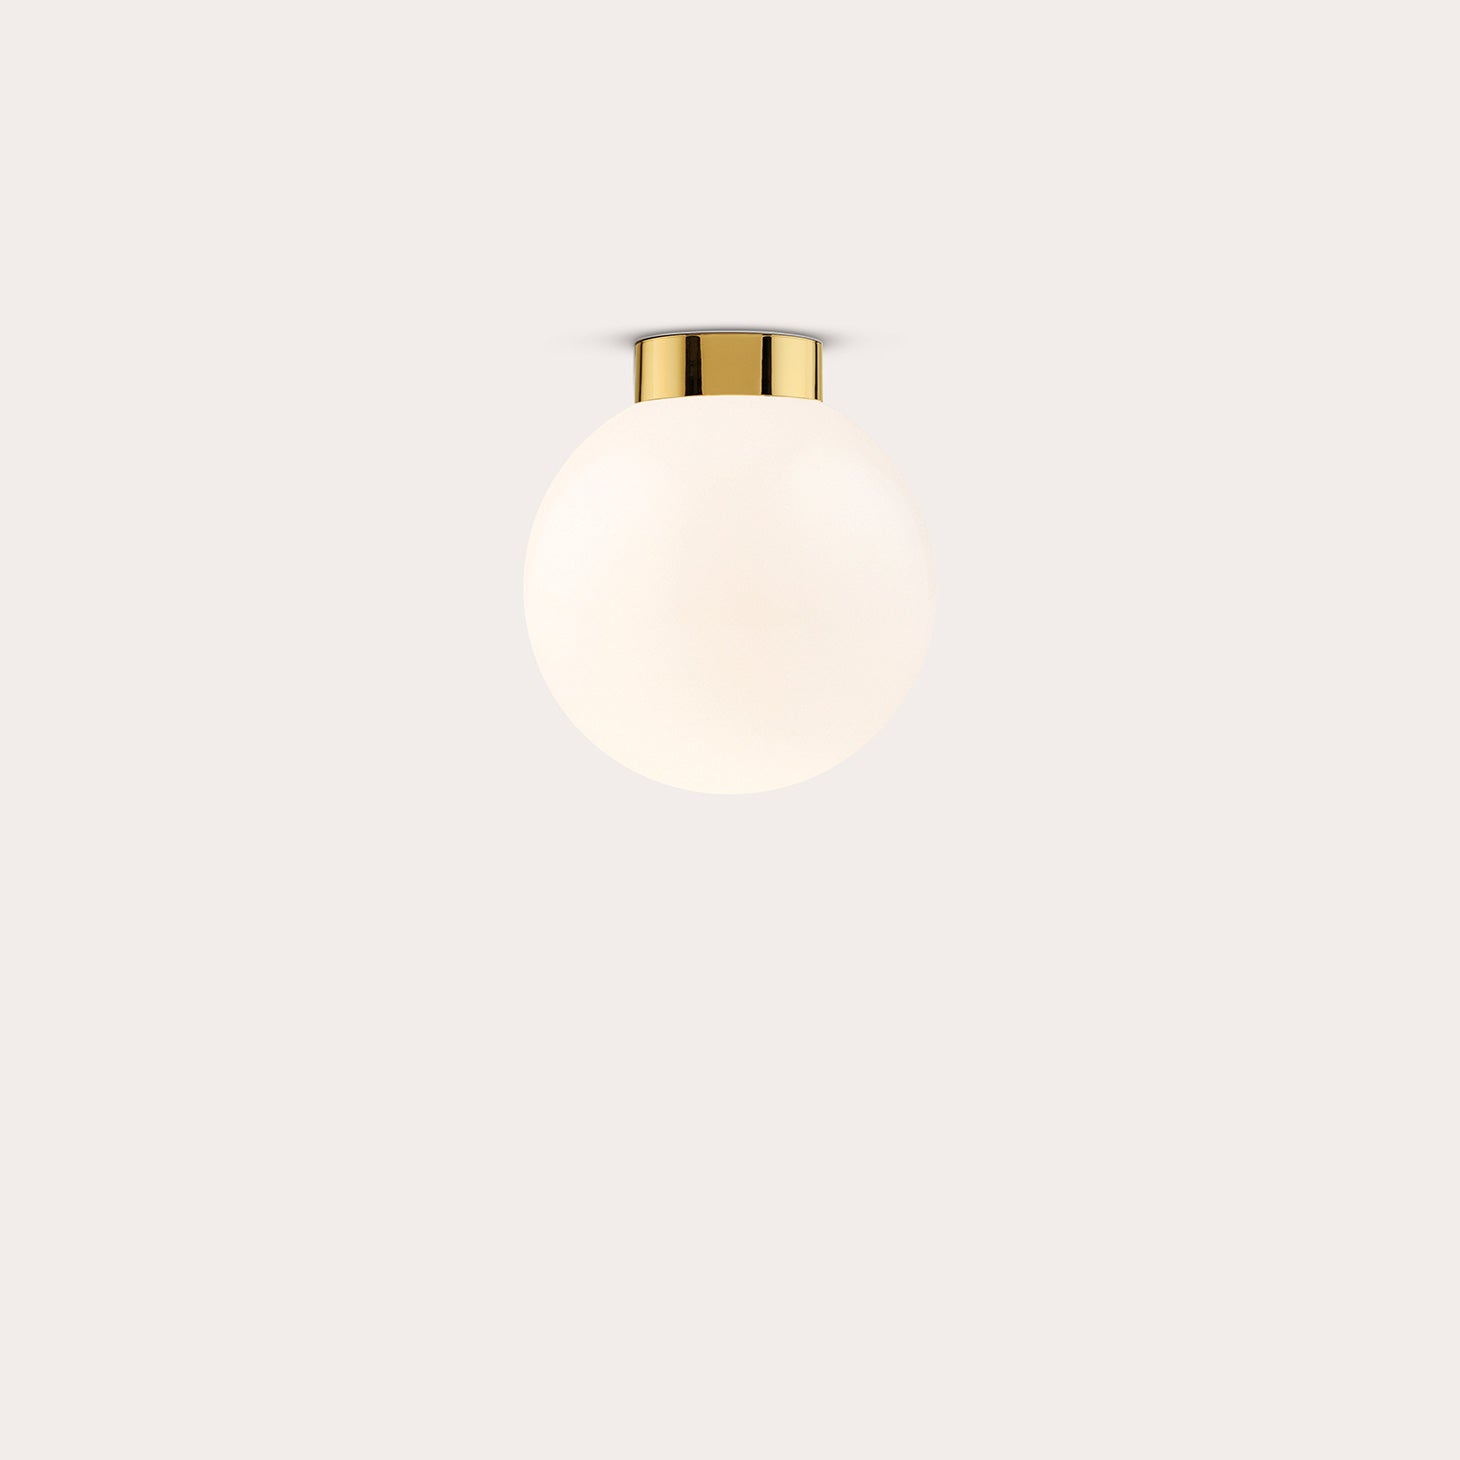 Sconce 250 Lighting Michael Anastassiades Designer Furniture Sku: 717-100-10070